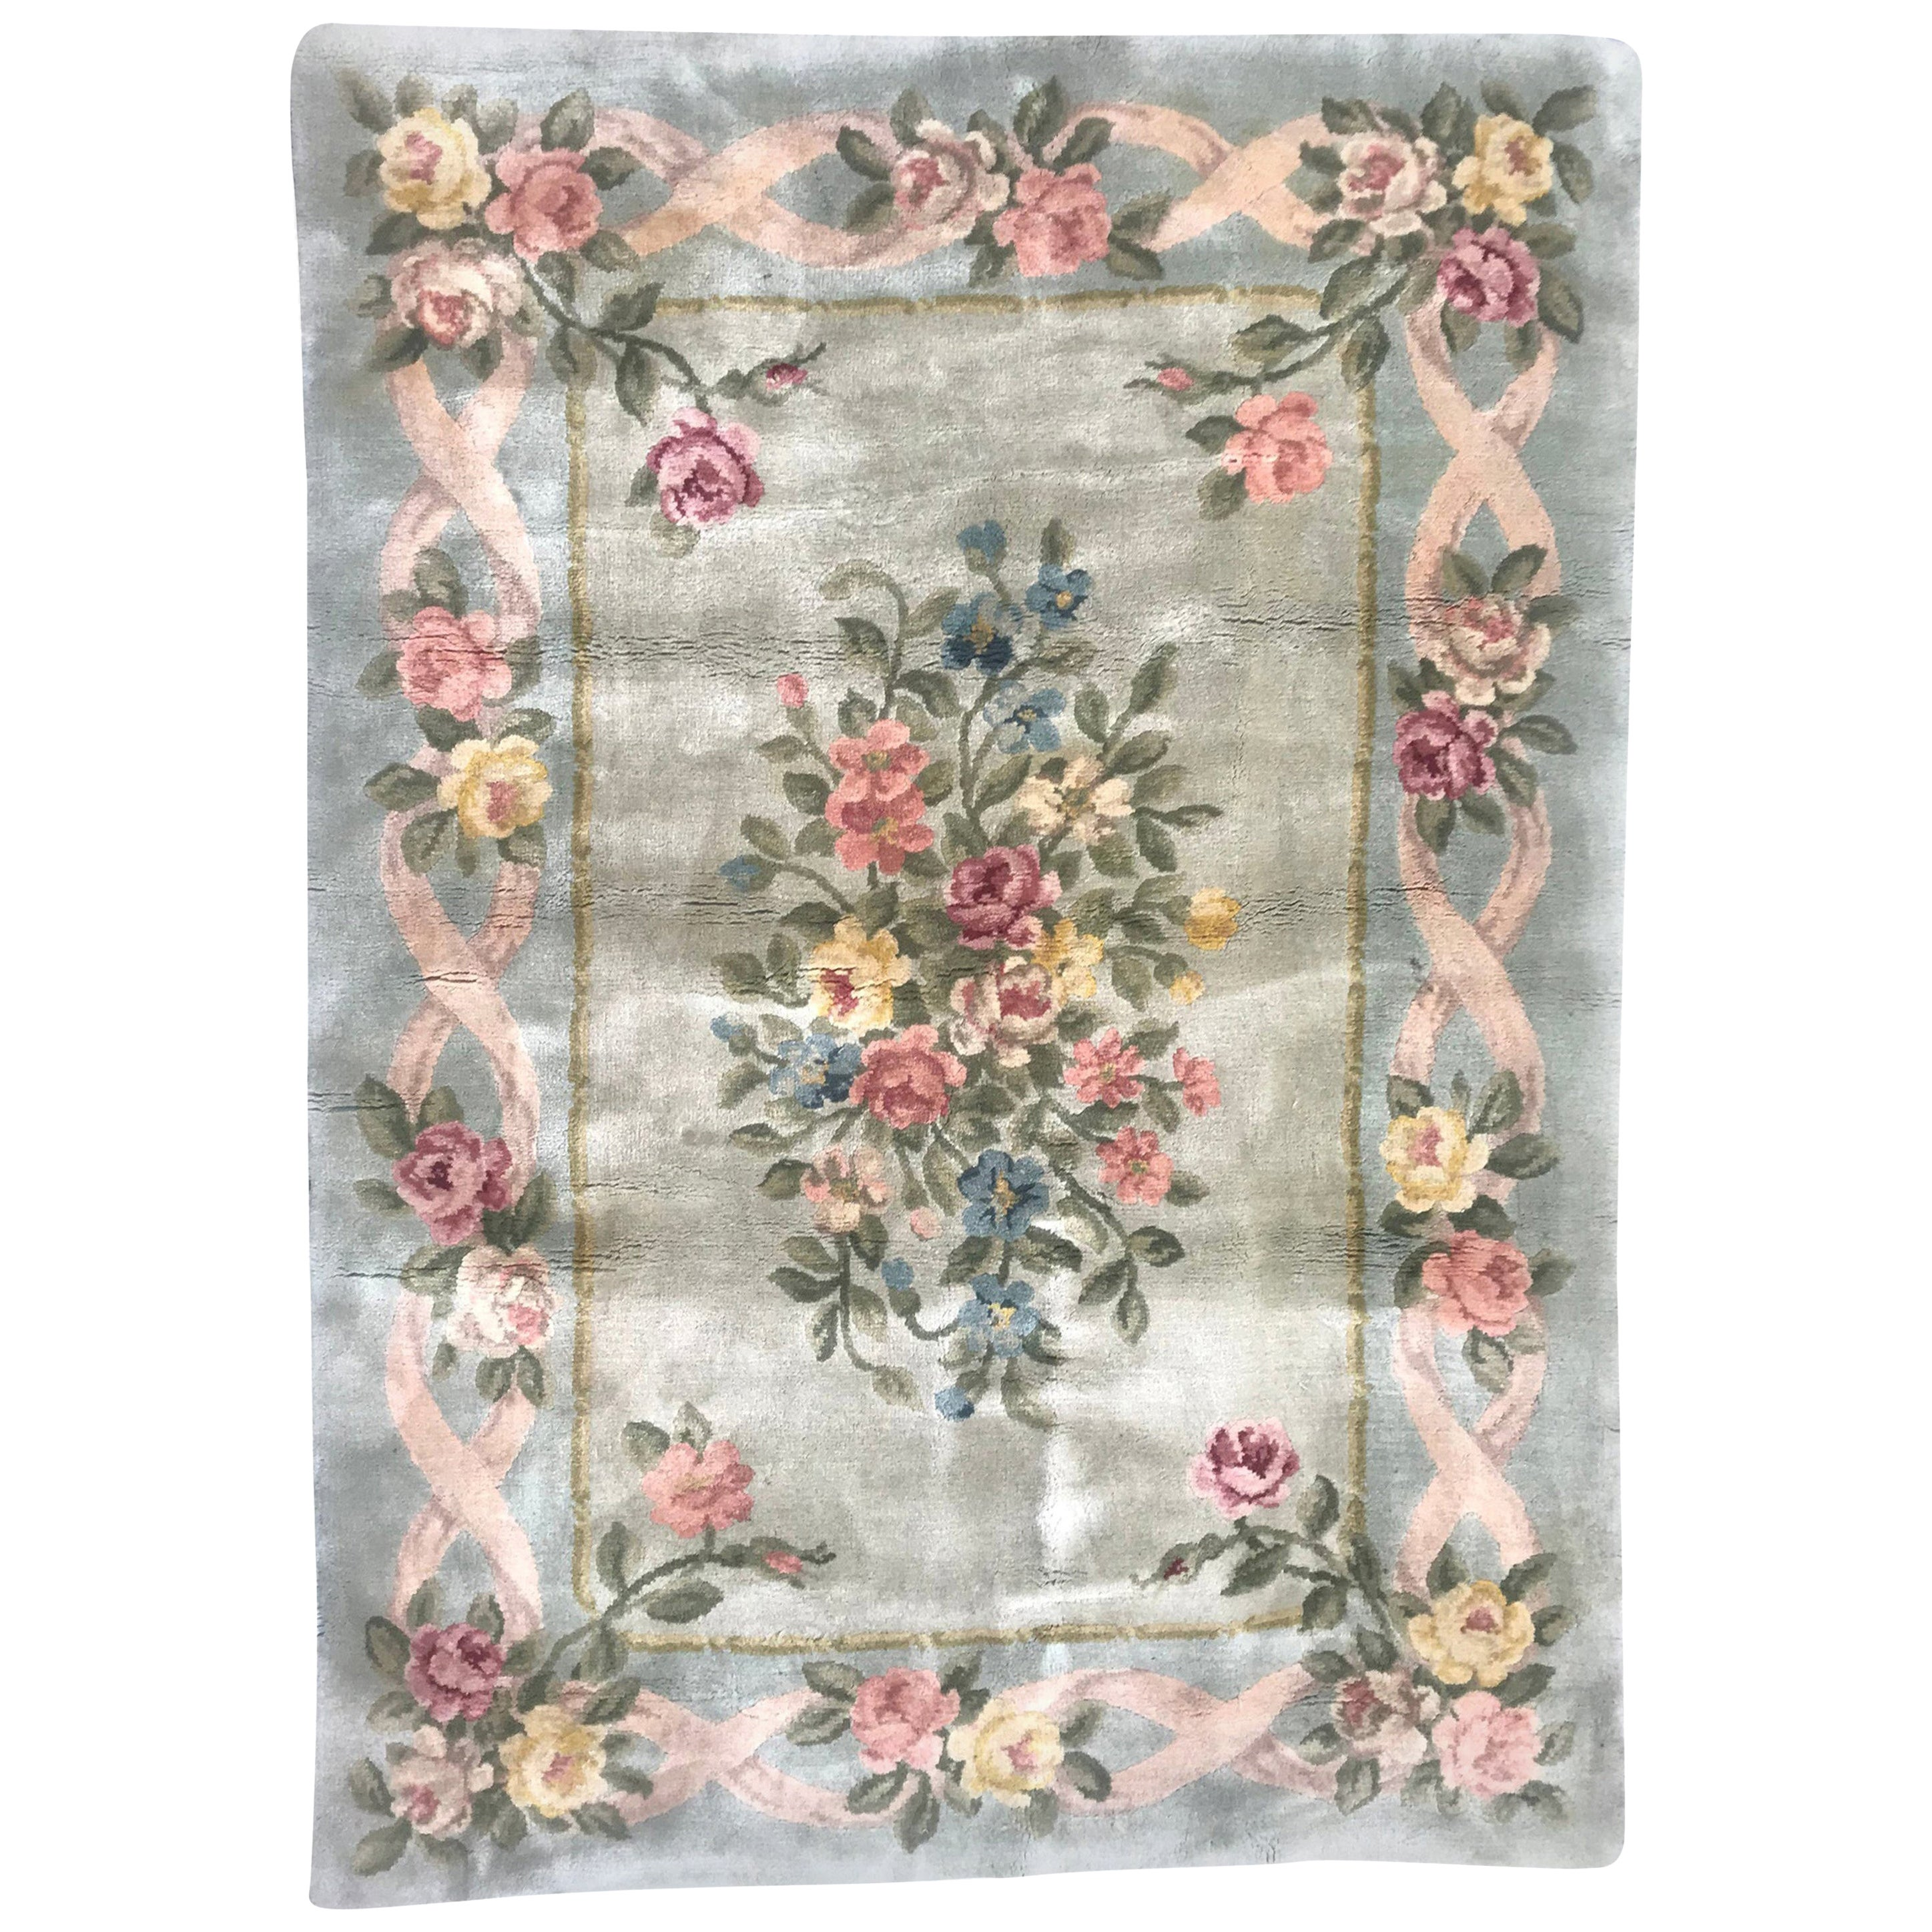 Luxurious Extremely Fine Aubusson Knotted Savonnerie Rug